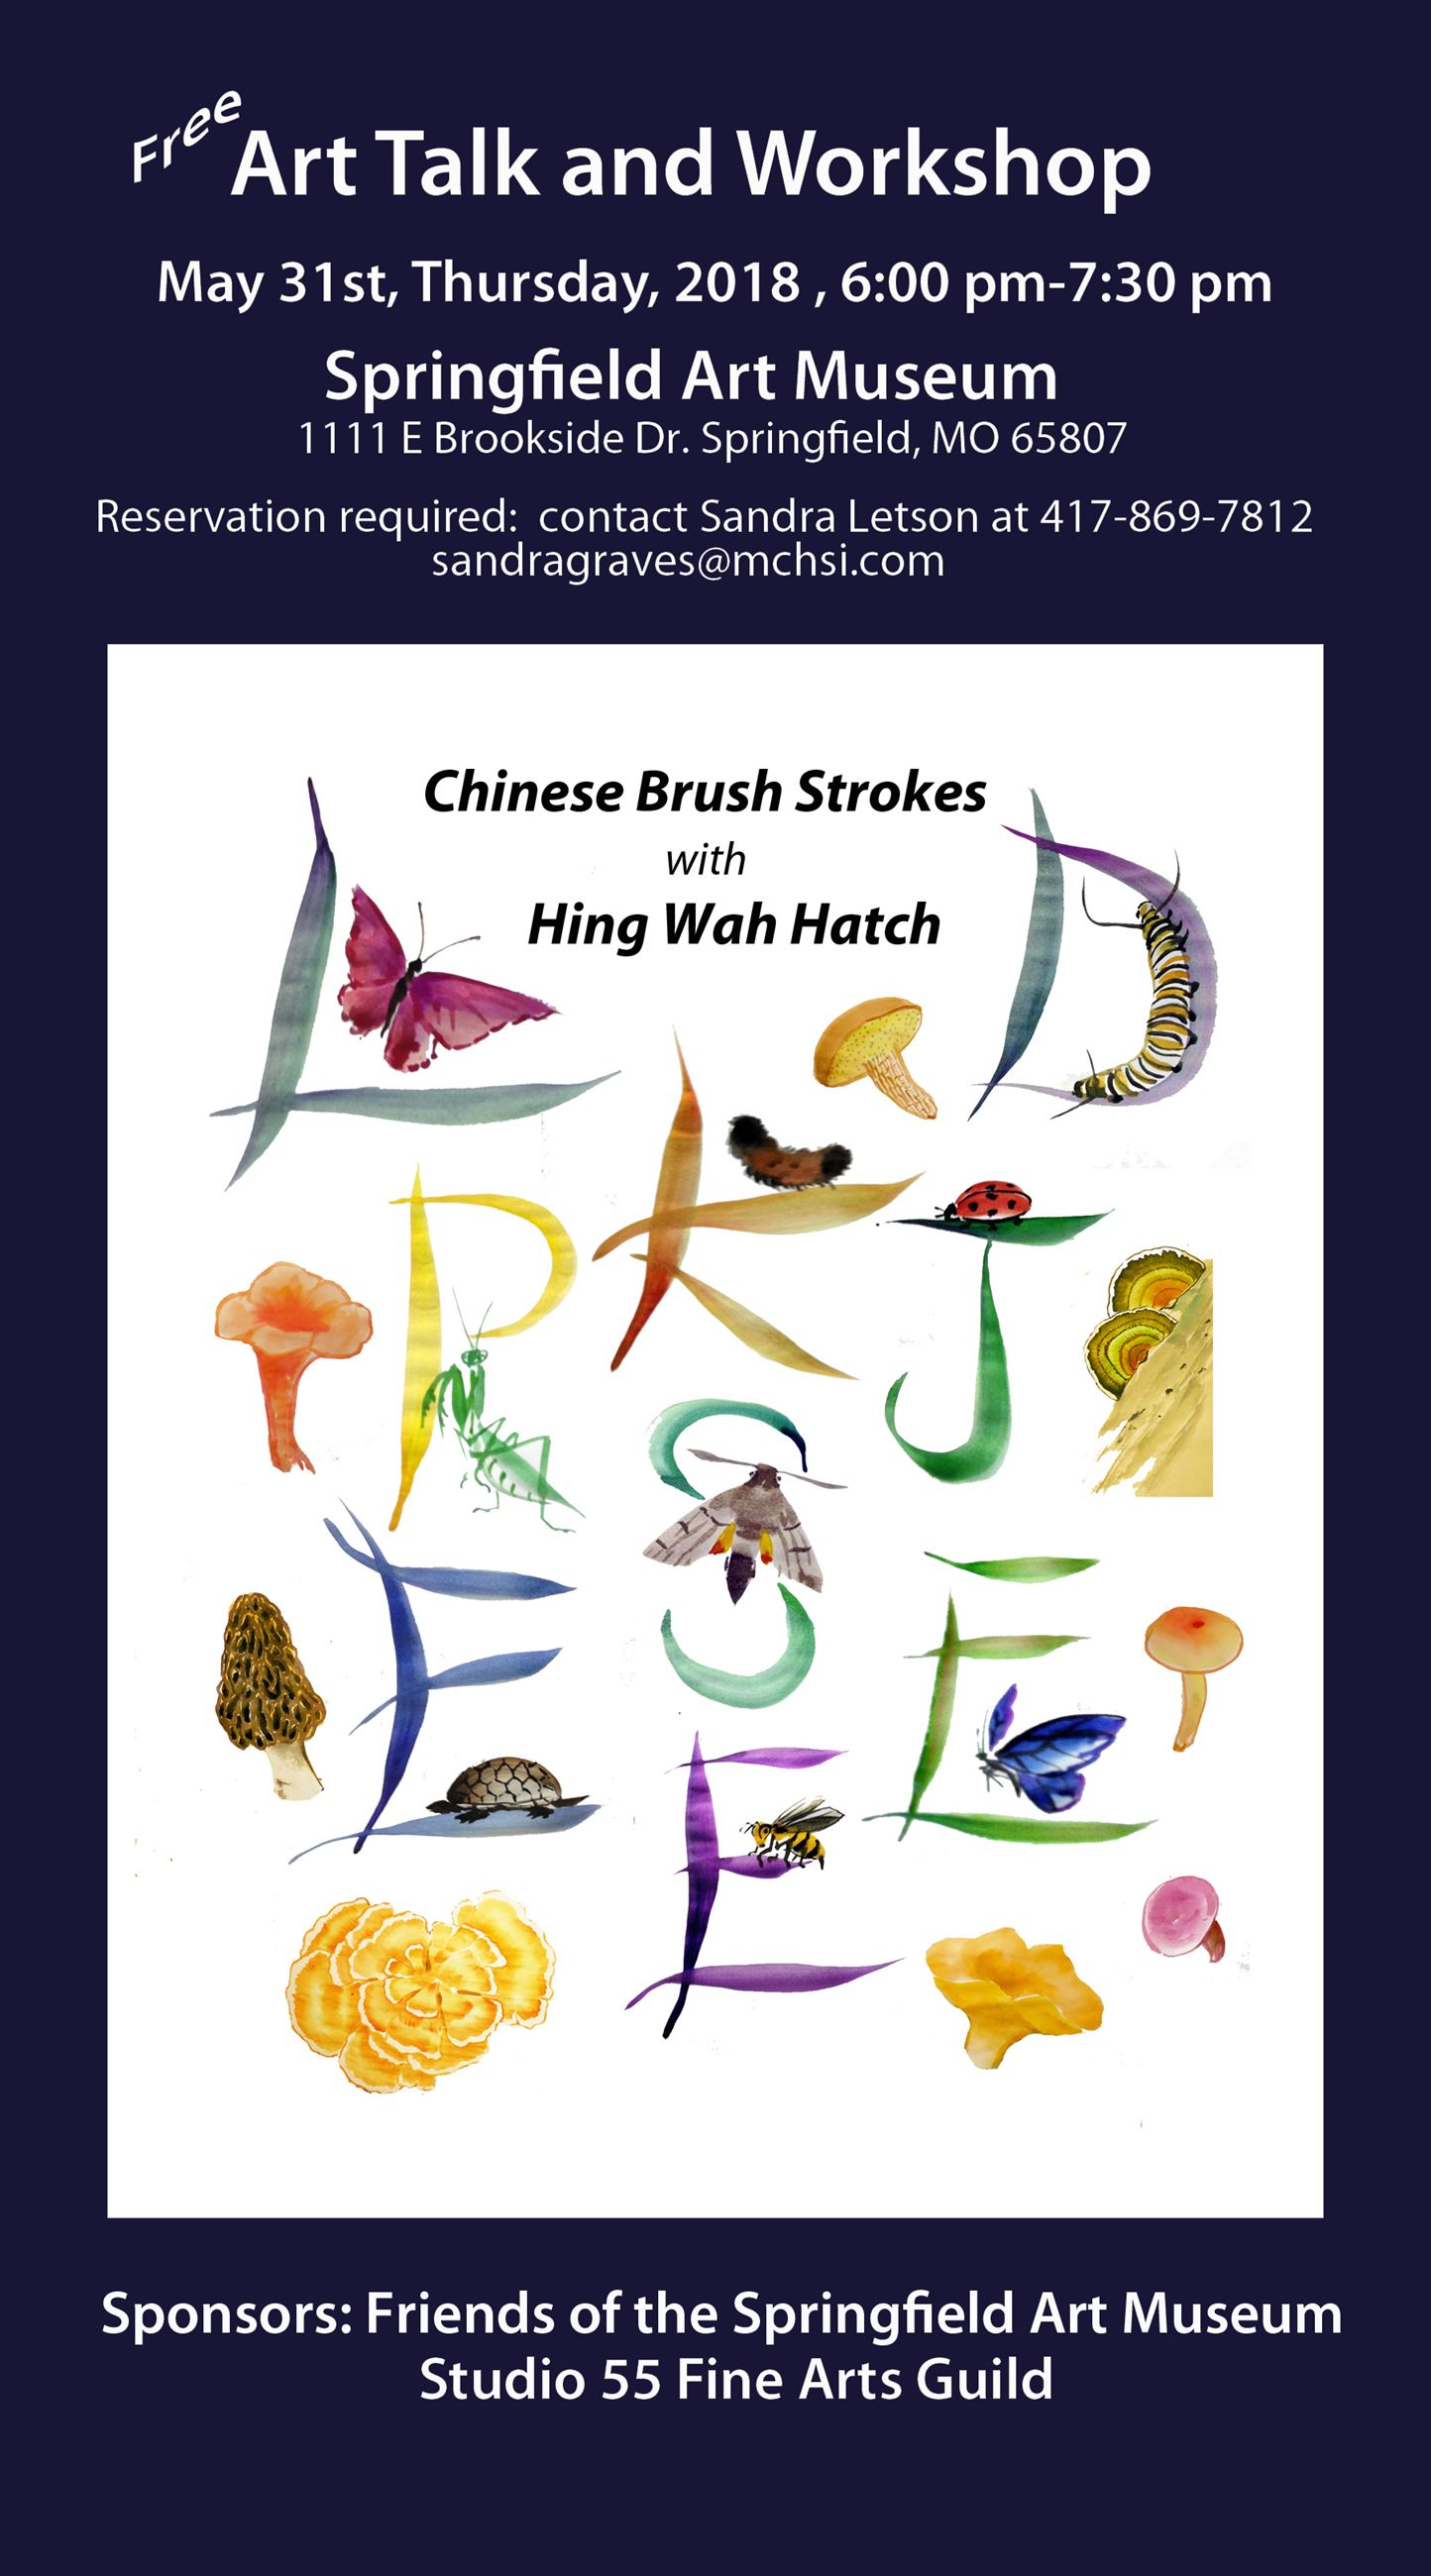 Applied Chinese Brush Strokes ArtTalk poster